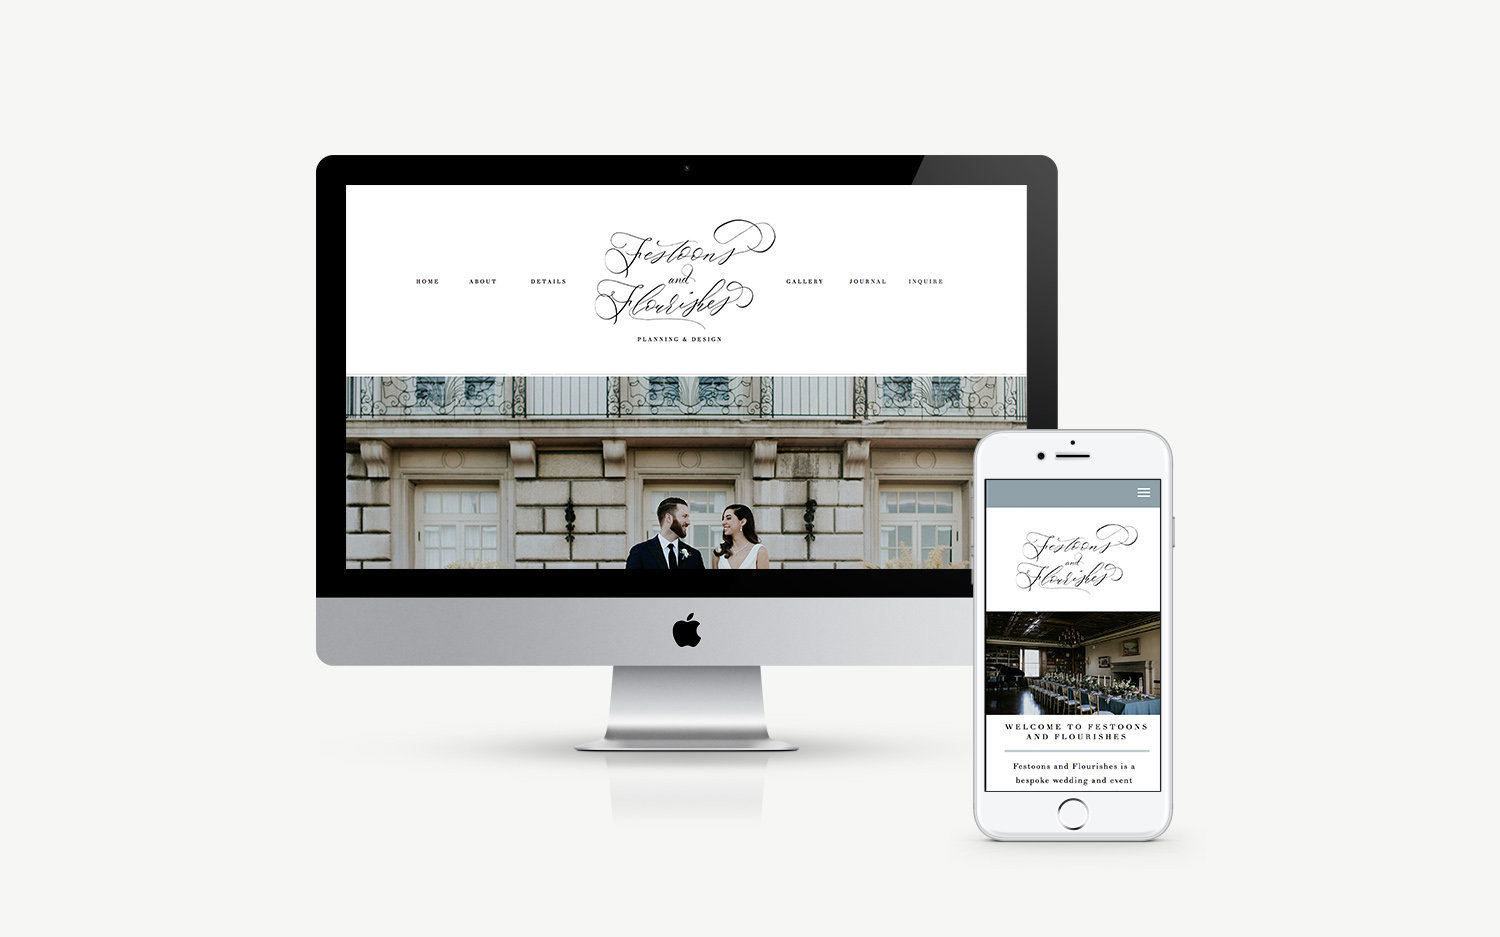 showit-website-branding-for-wedding-businesses-festoons-0